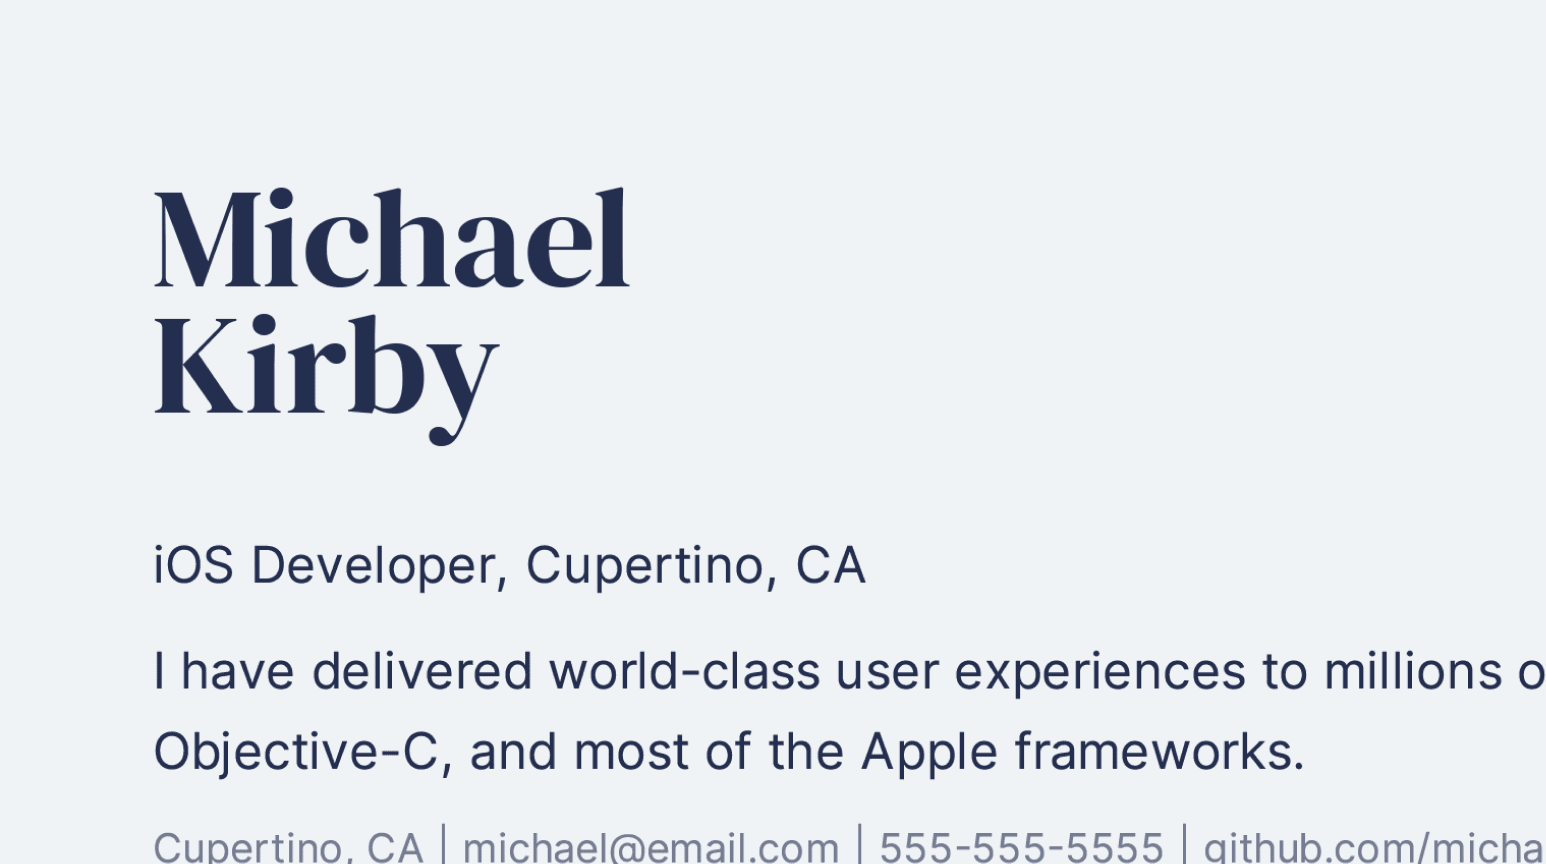 Design details of professional iOS Developer resume sample.